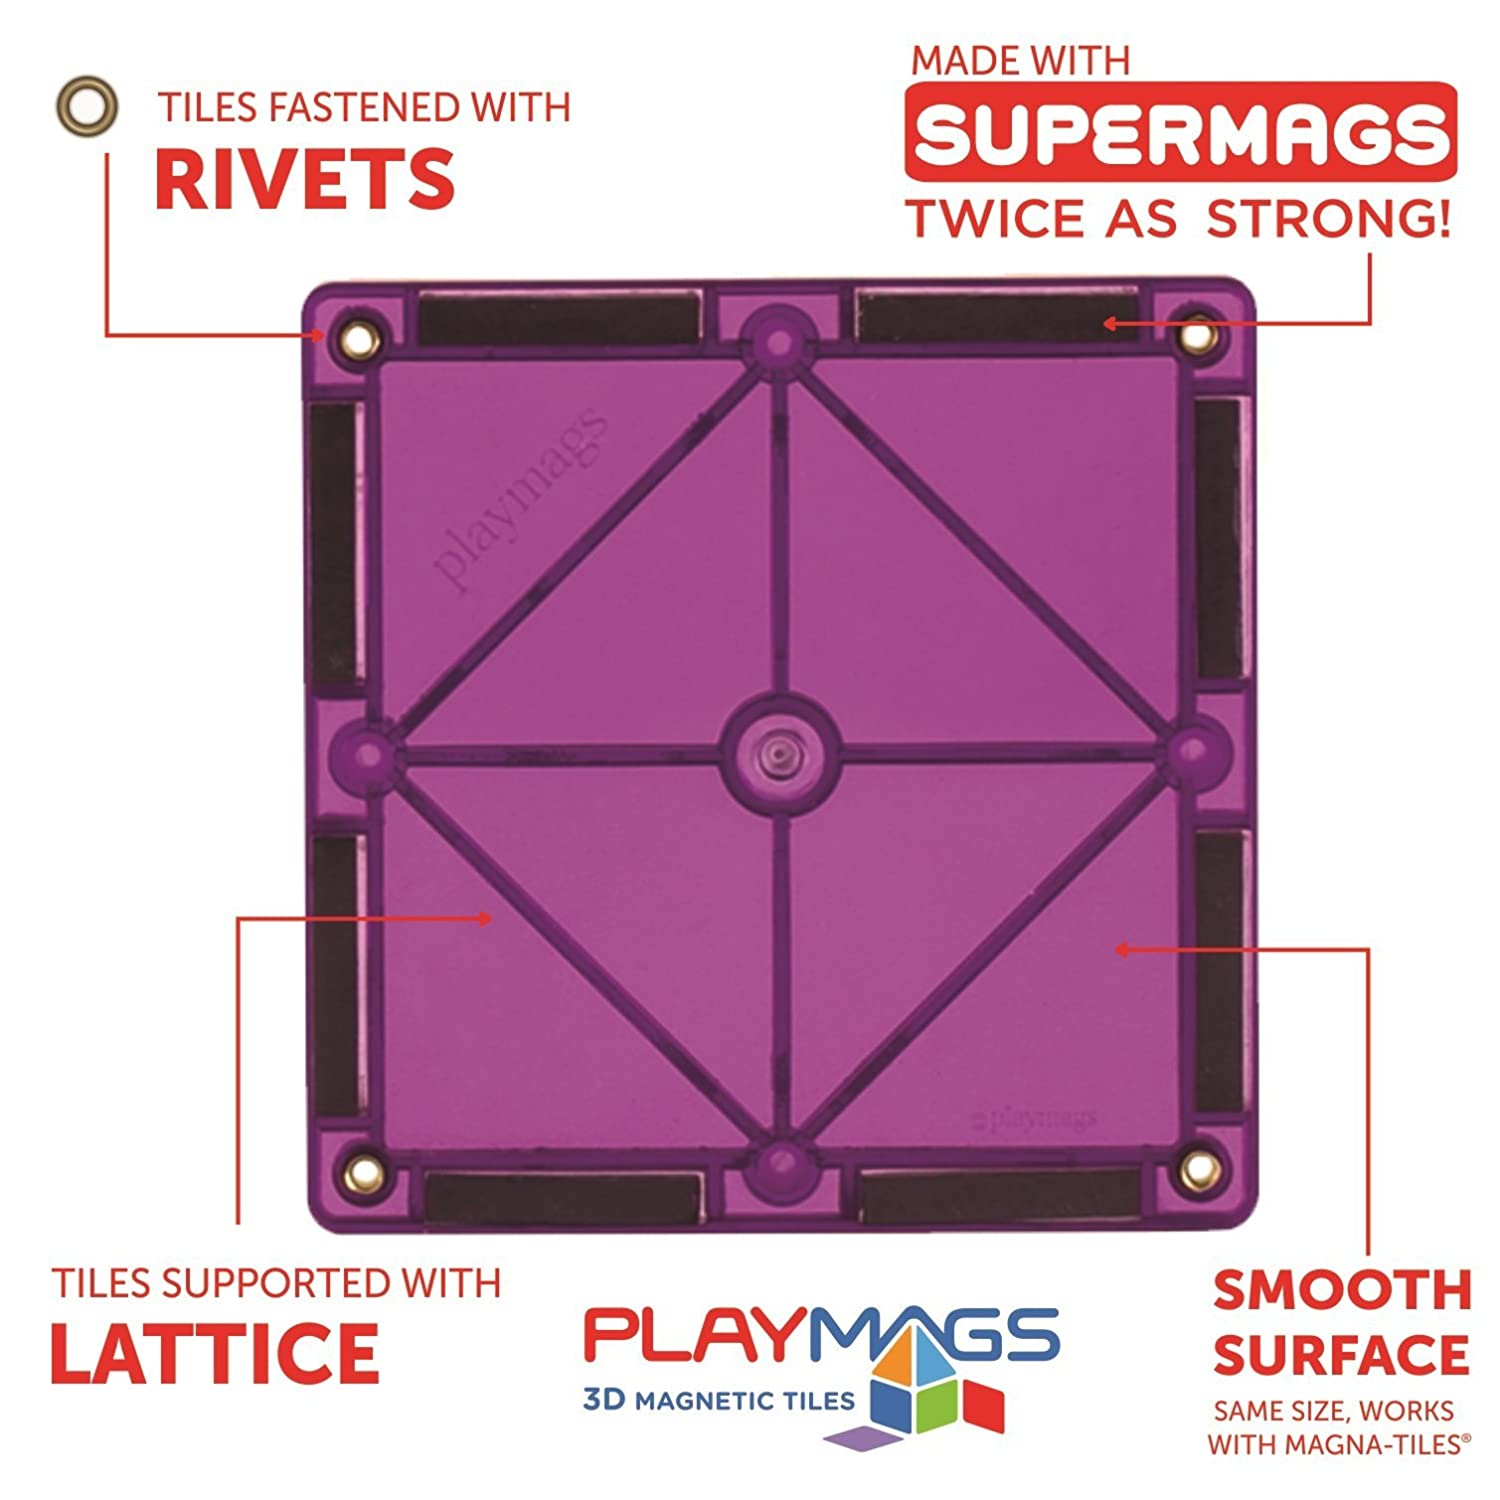 Playmags 100 Piece Super Set: With Strongest Magnets Guaranteed ...